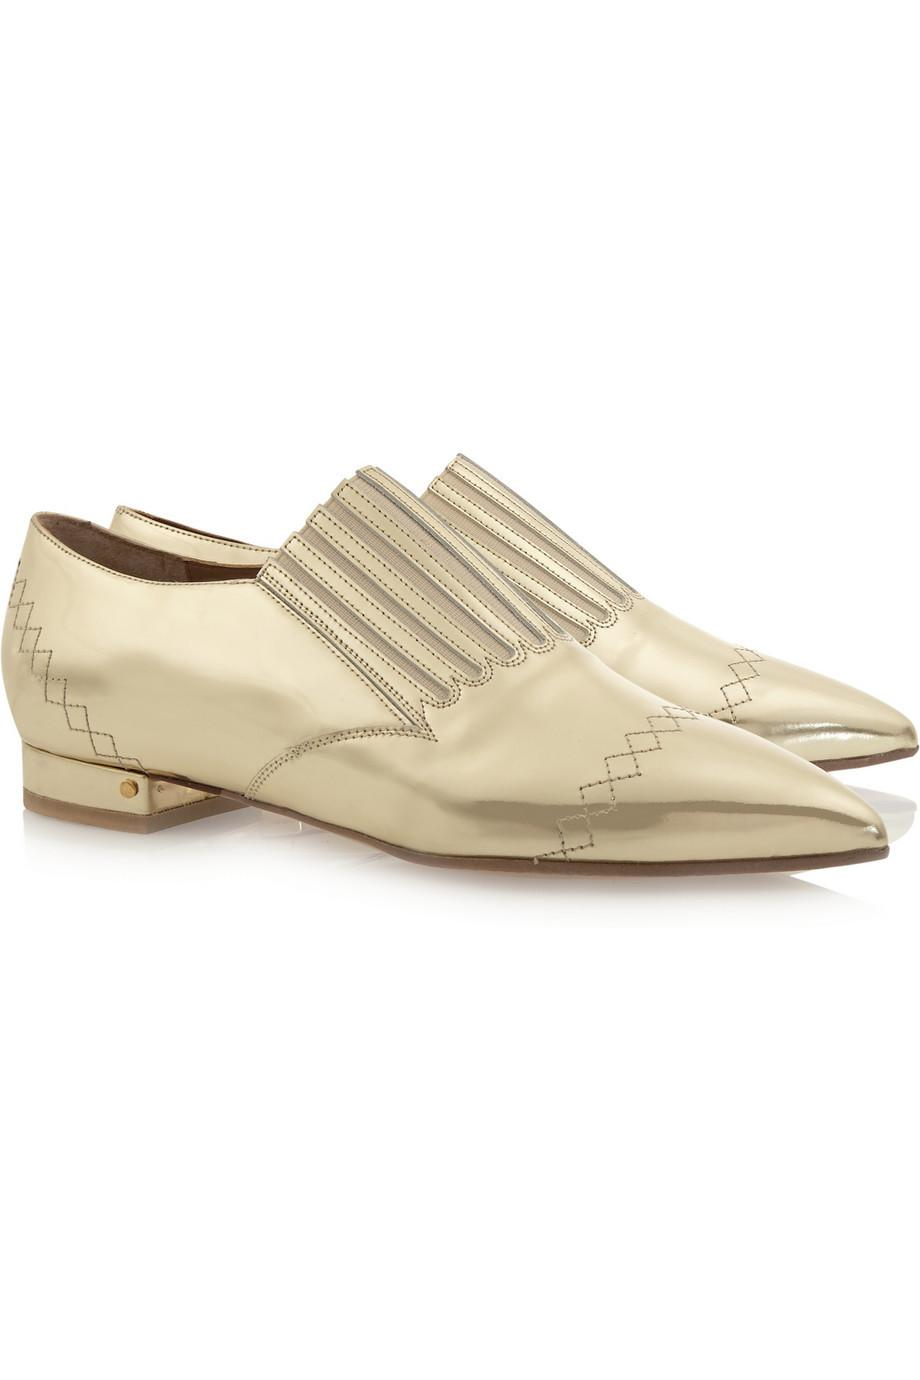 Nothing says stylish celebration quite like @laurencedacade's golden brogues! #Shoeoftheday  http://t.co/e2VW7pGB3c http://t.co/zSSf7FTaVd